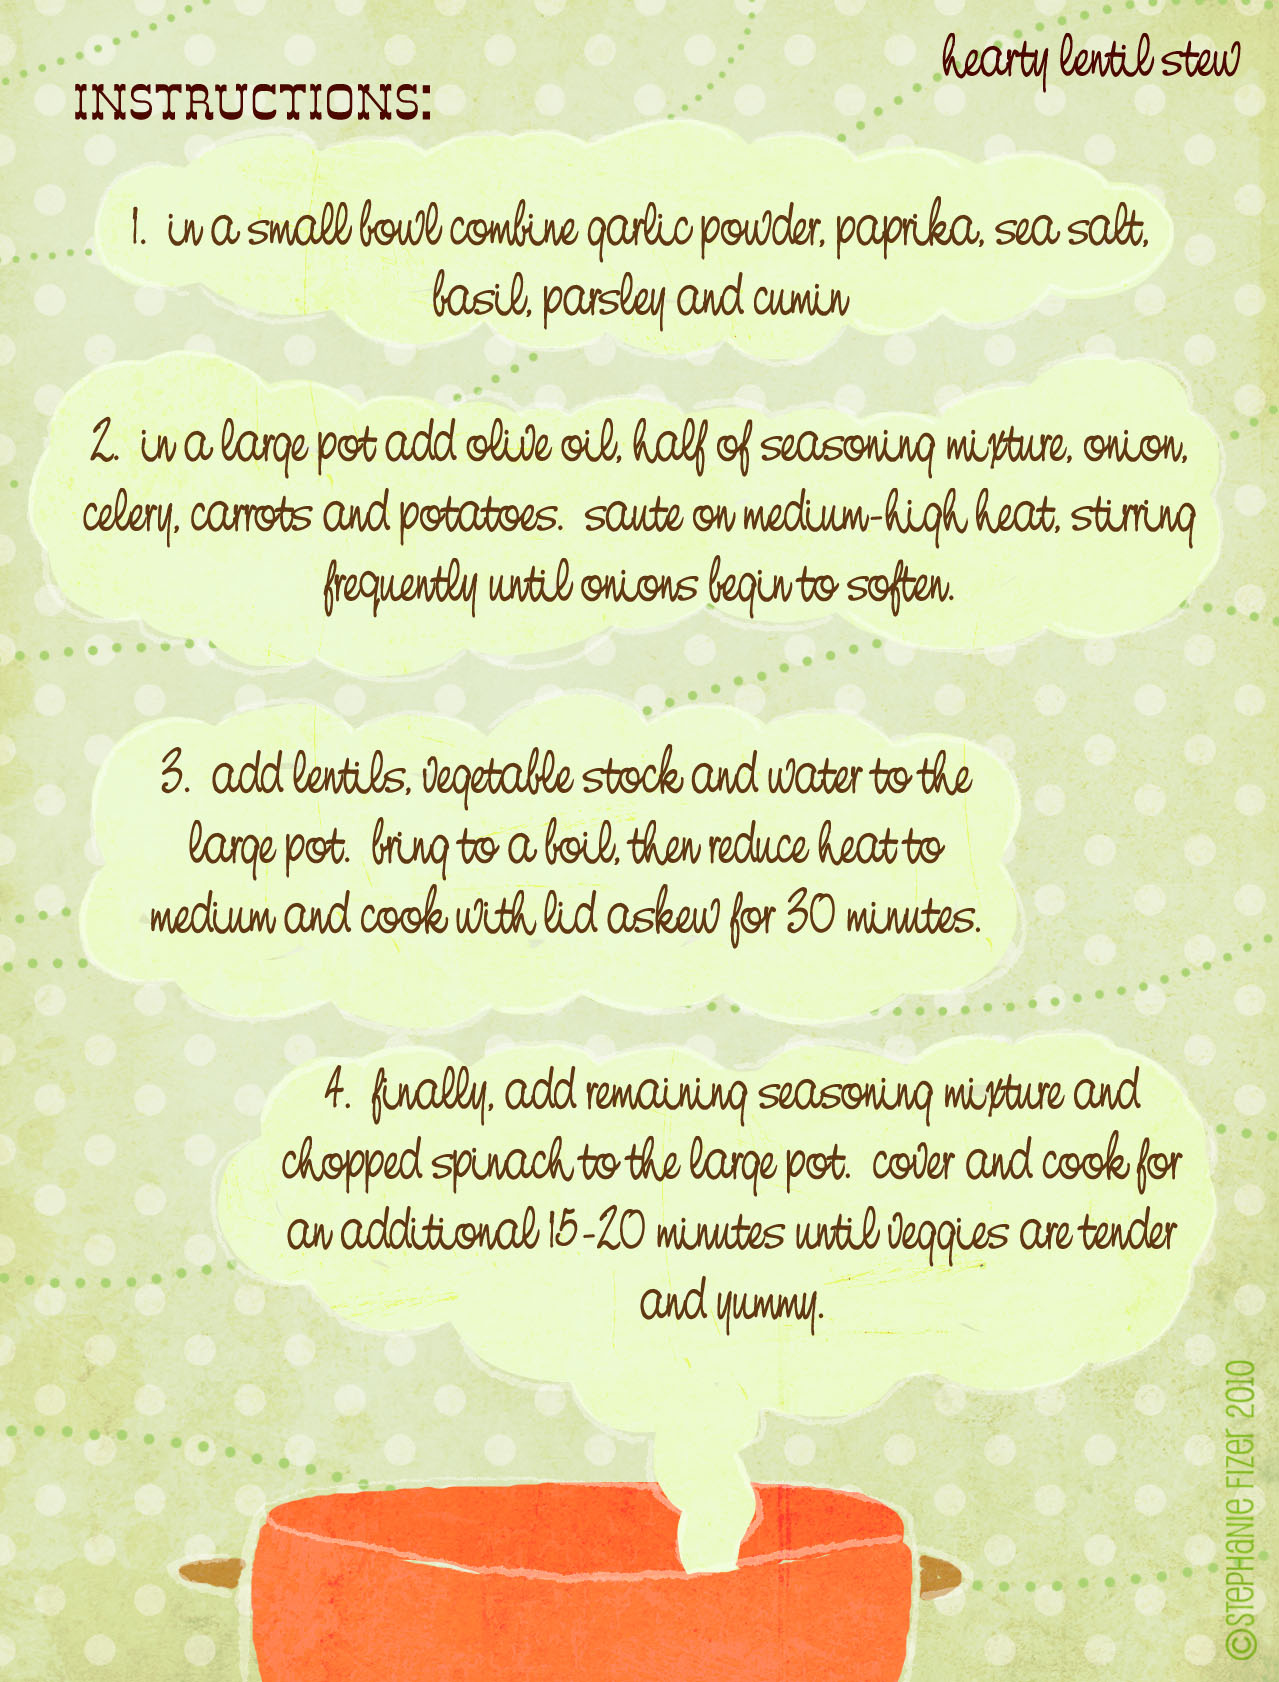 Lentil stew instructions card